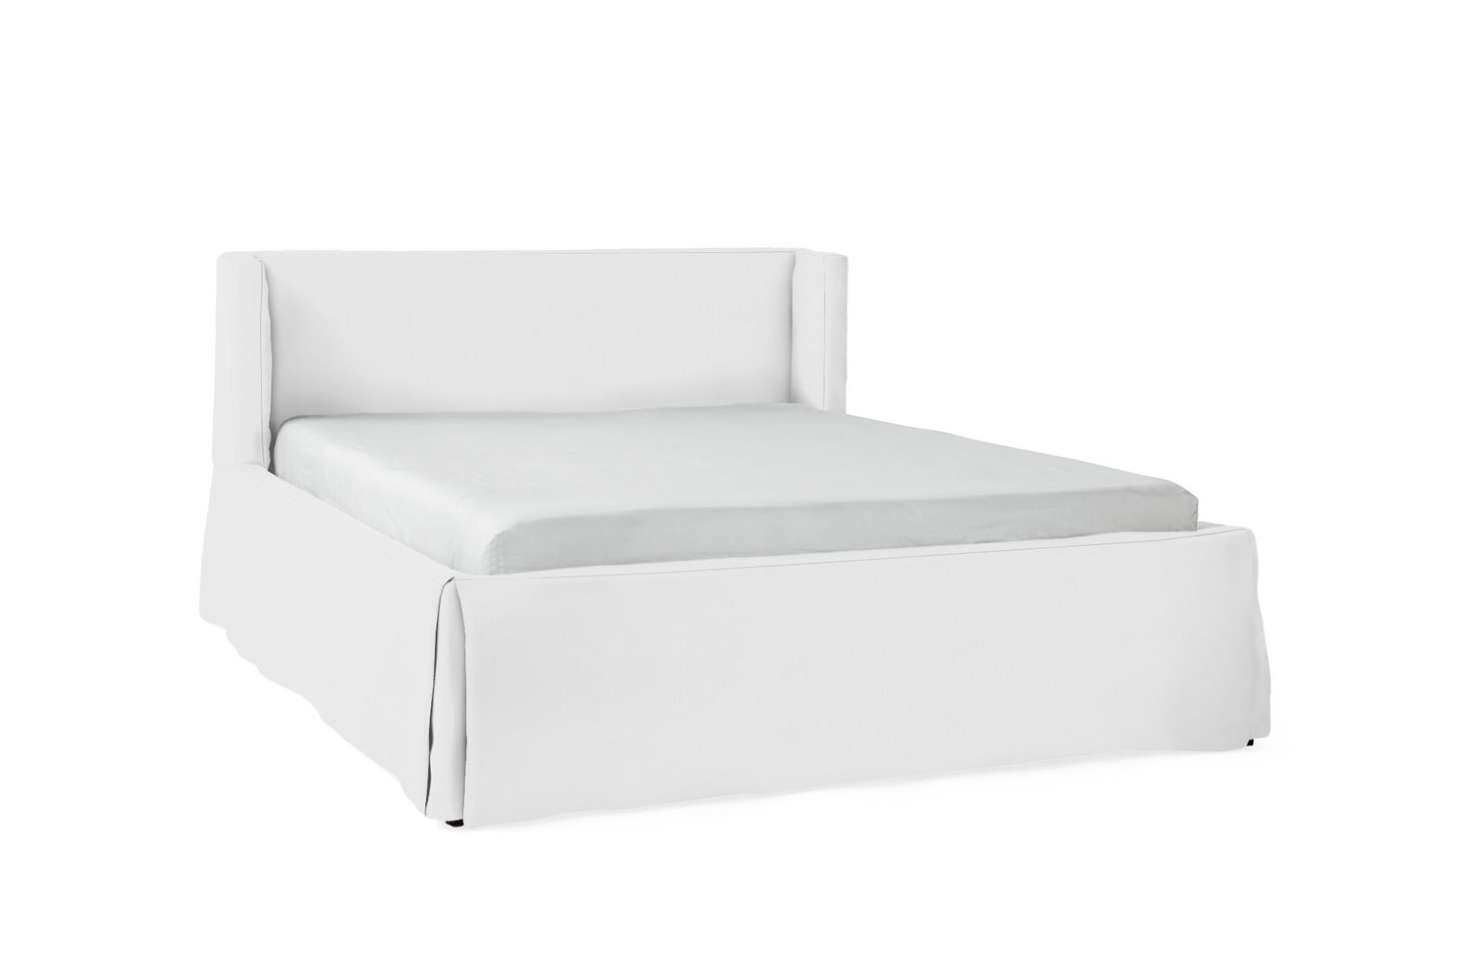 The Broderick Slipcovered Bed is currently on sale $